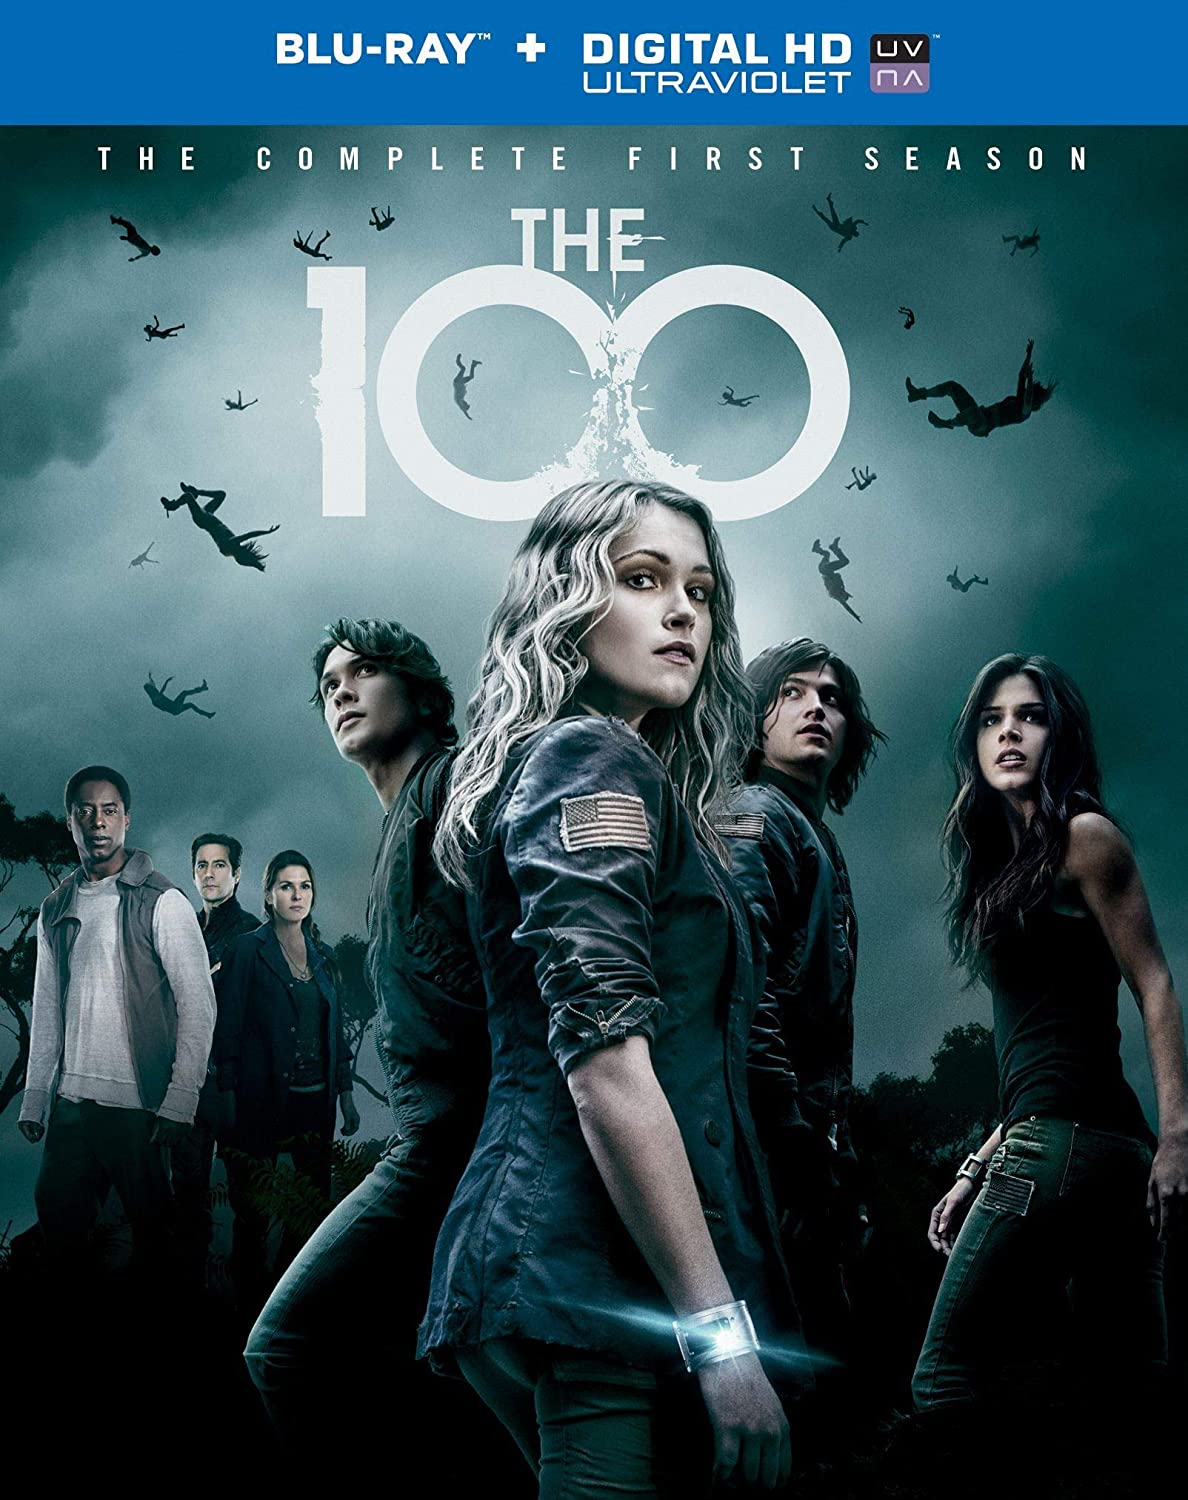 The 100: The Complete Season 1 Blu-ray + Digital HD + UV Slipcase ...